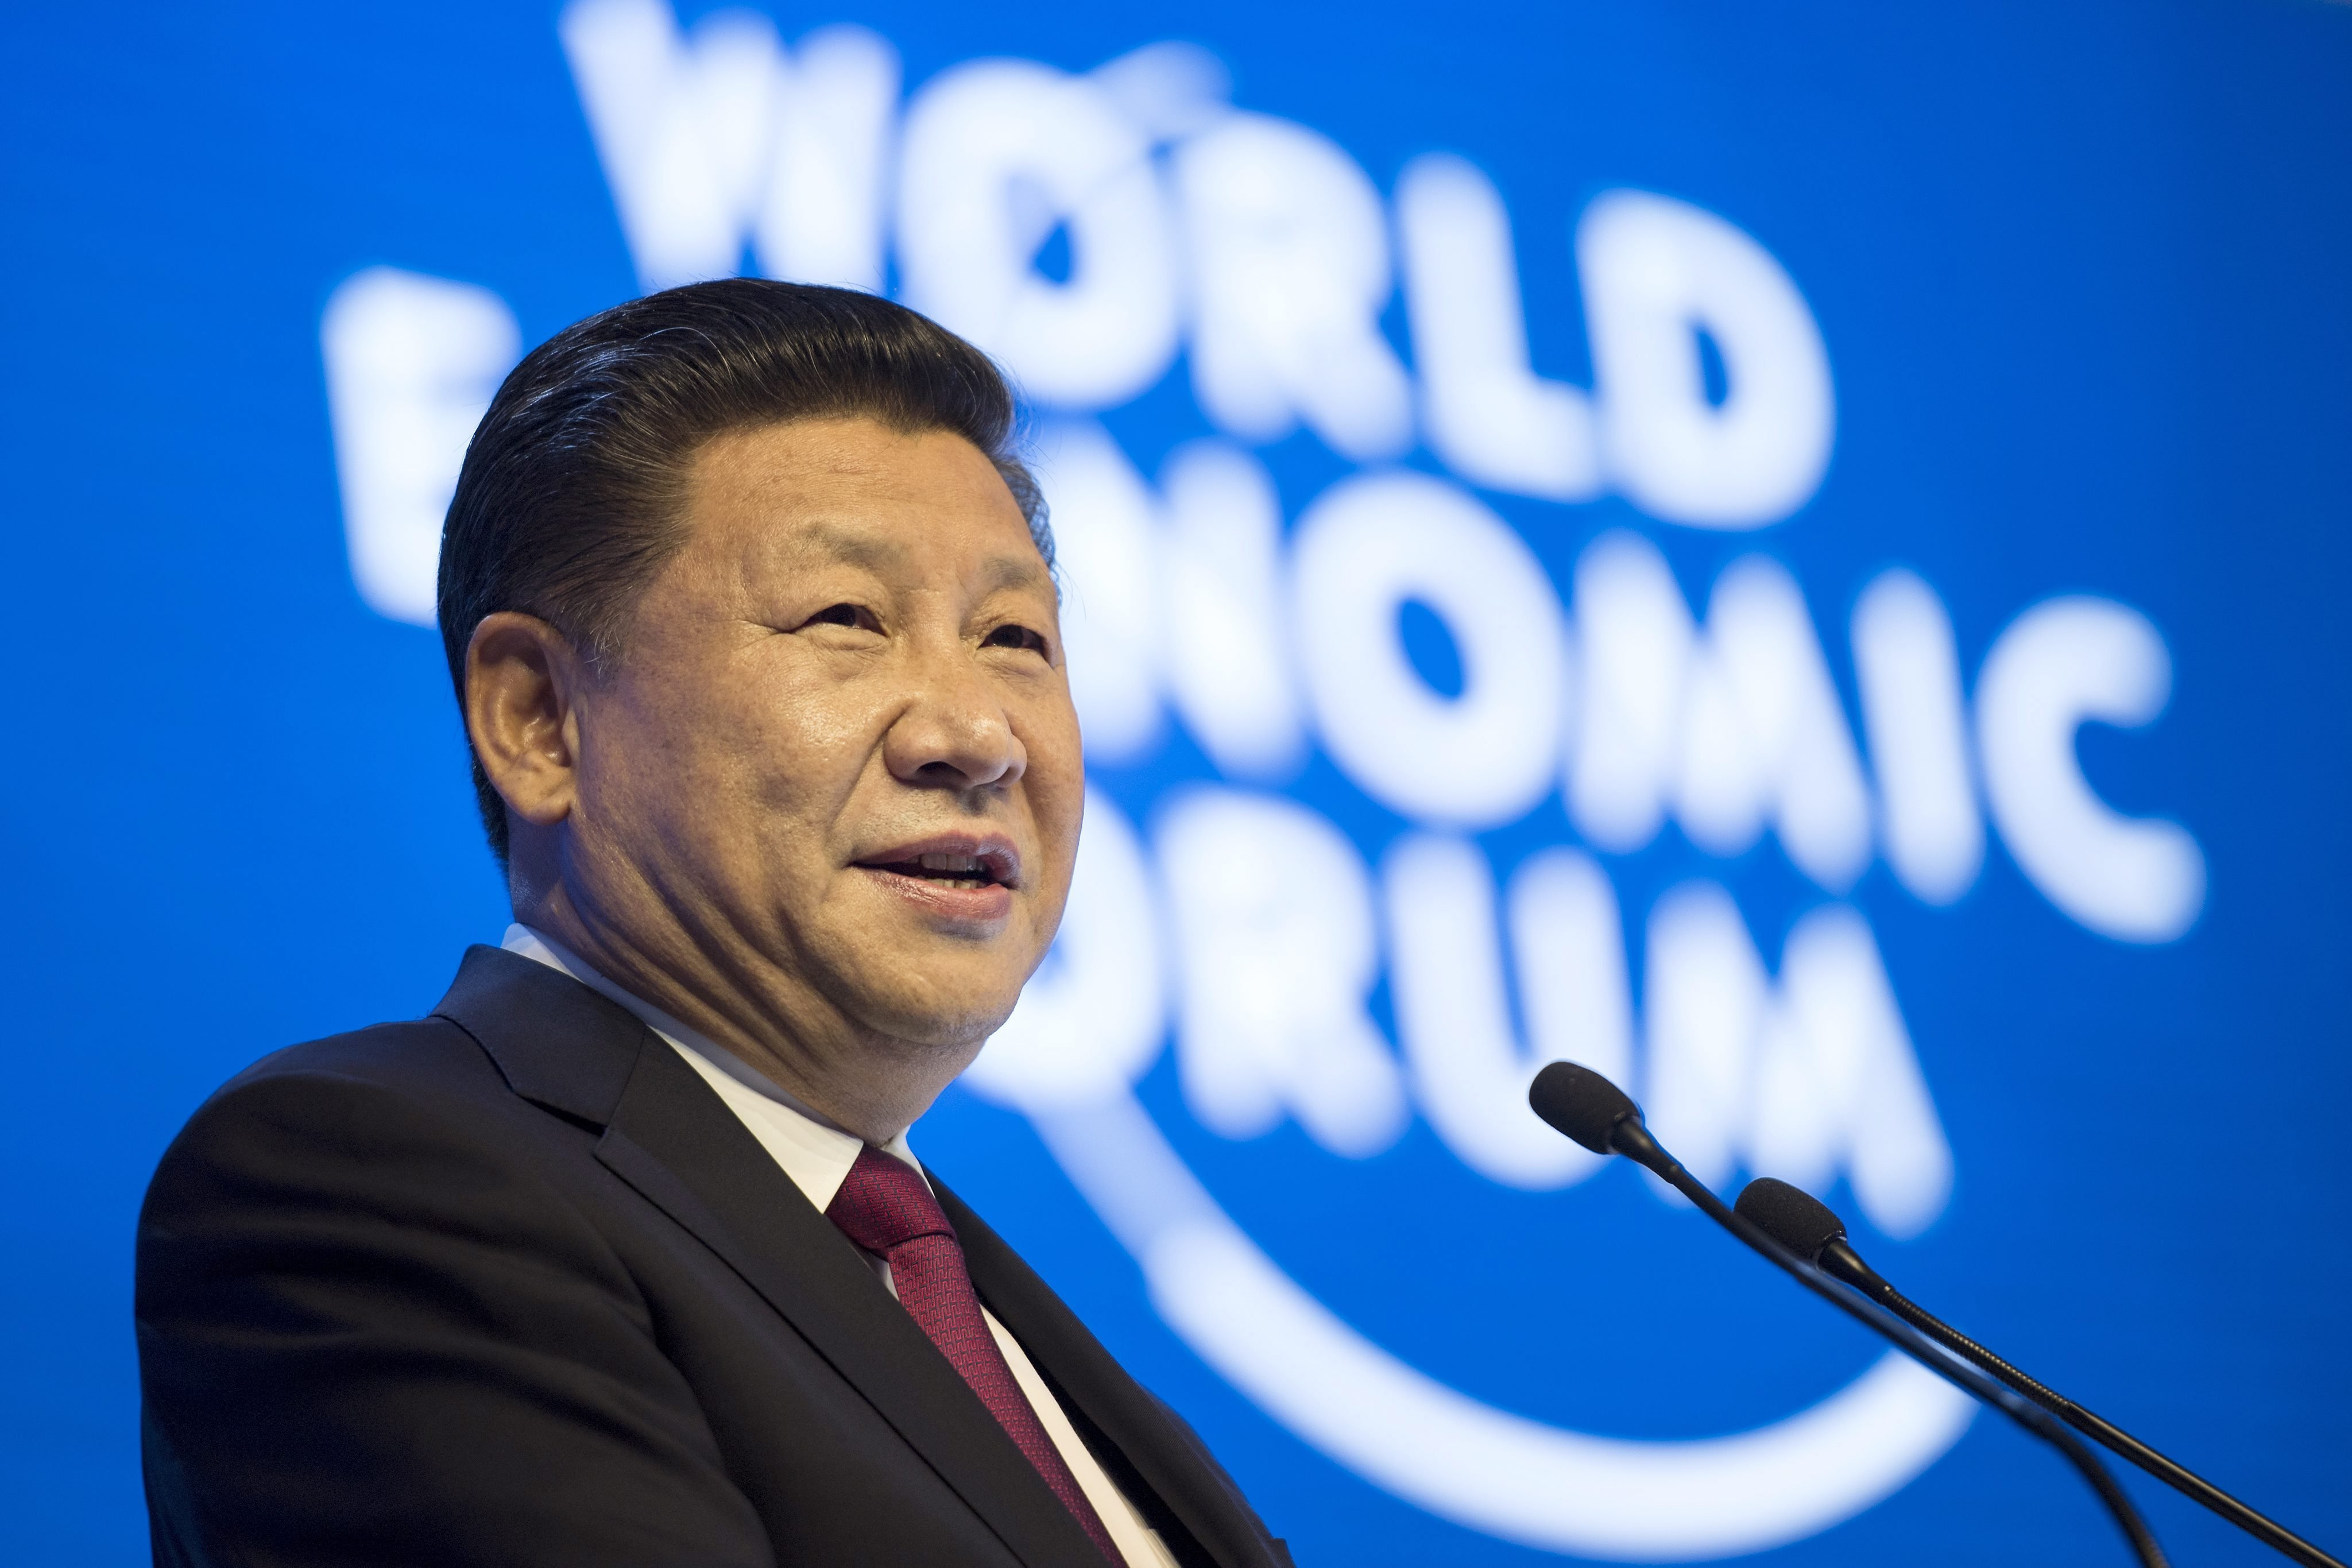 In Davos Xi Defends Free Trade, Paris Climate Accord